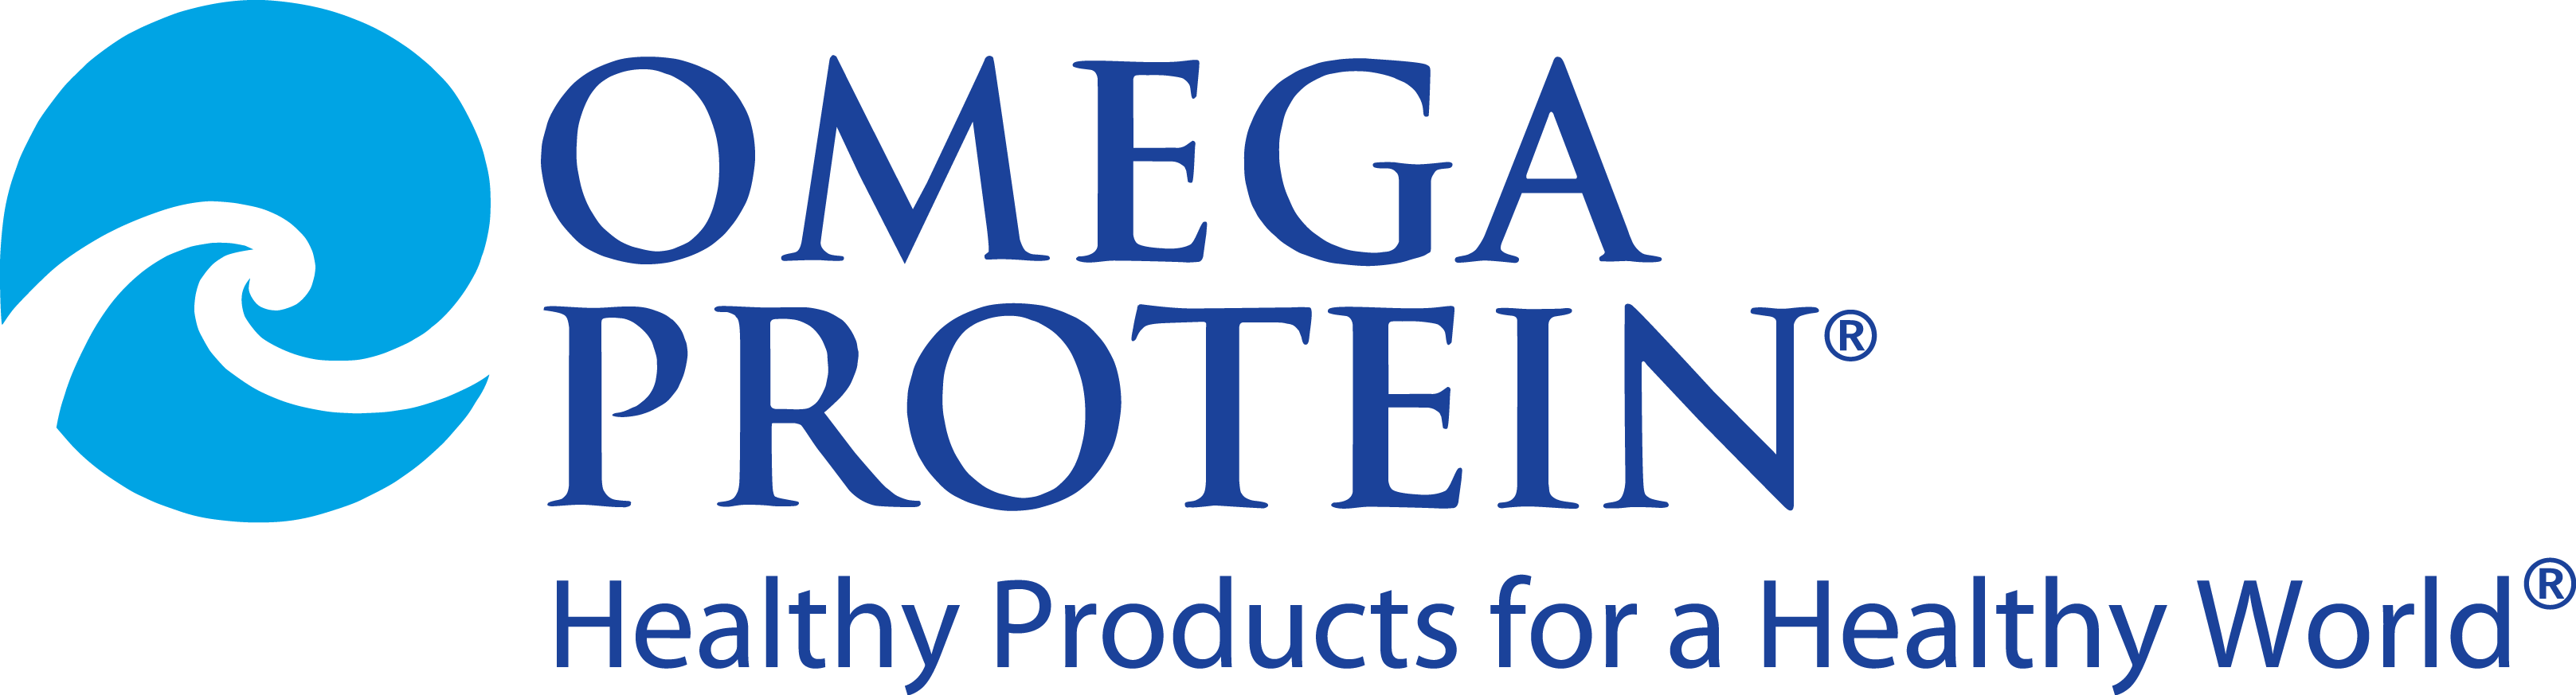 Omega Protein Shares Support of ASMFC Decision on New Menhaden Management Approach